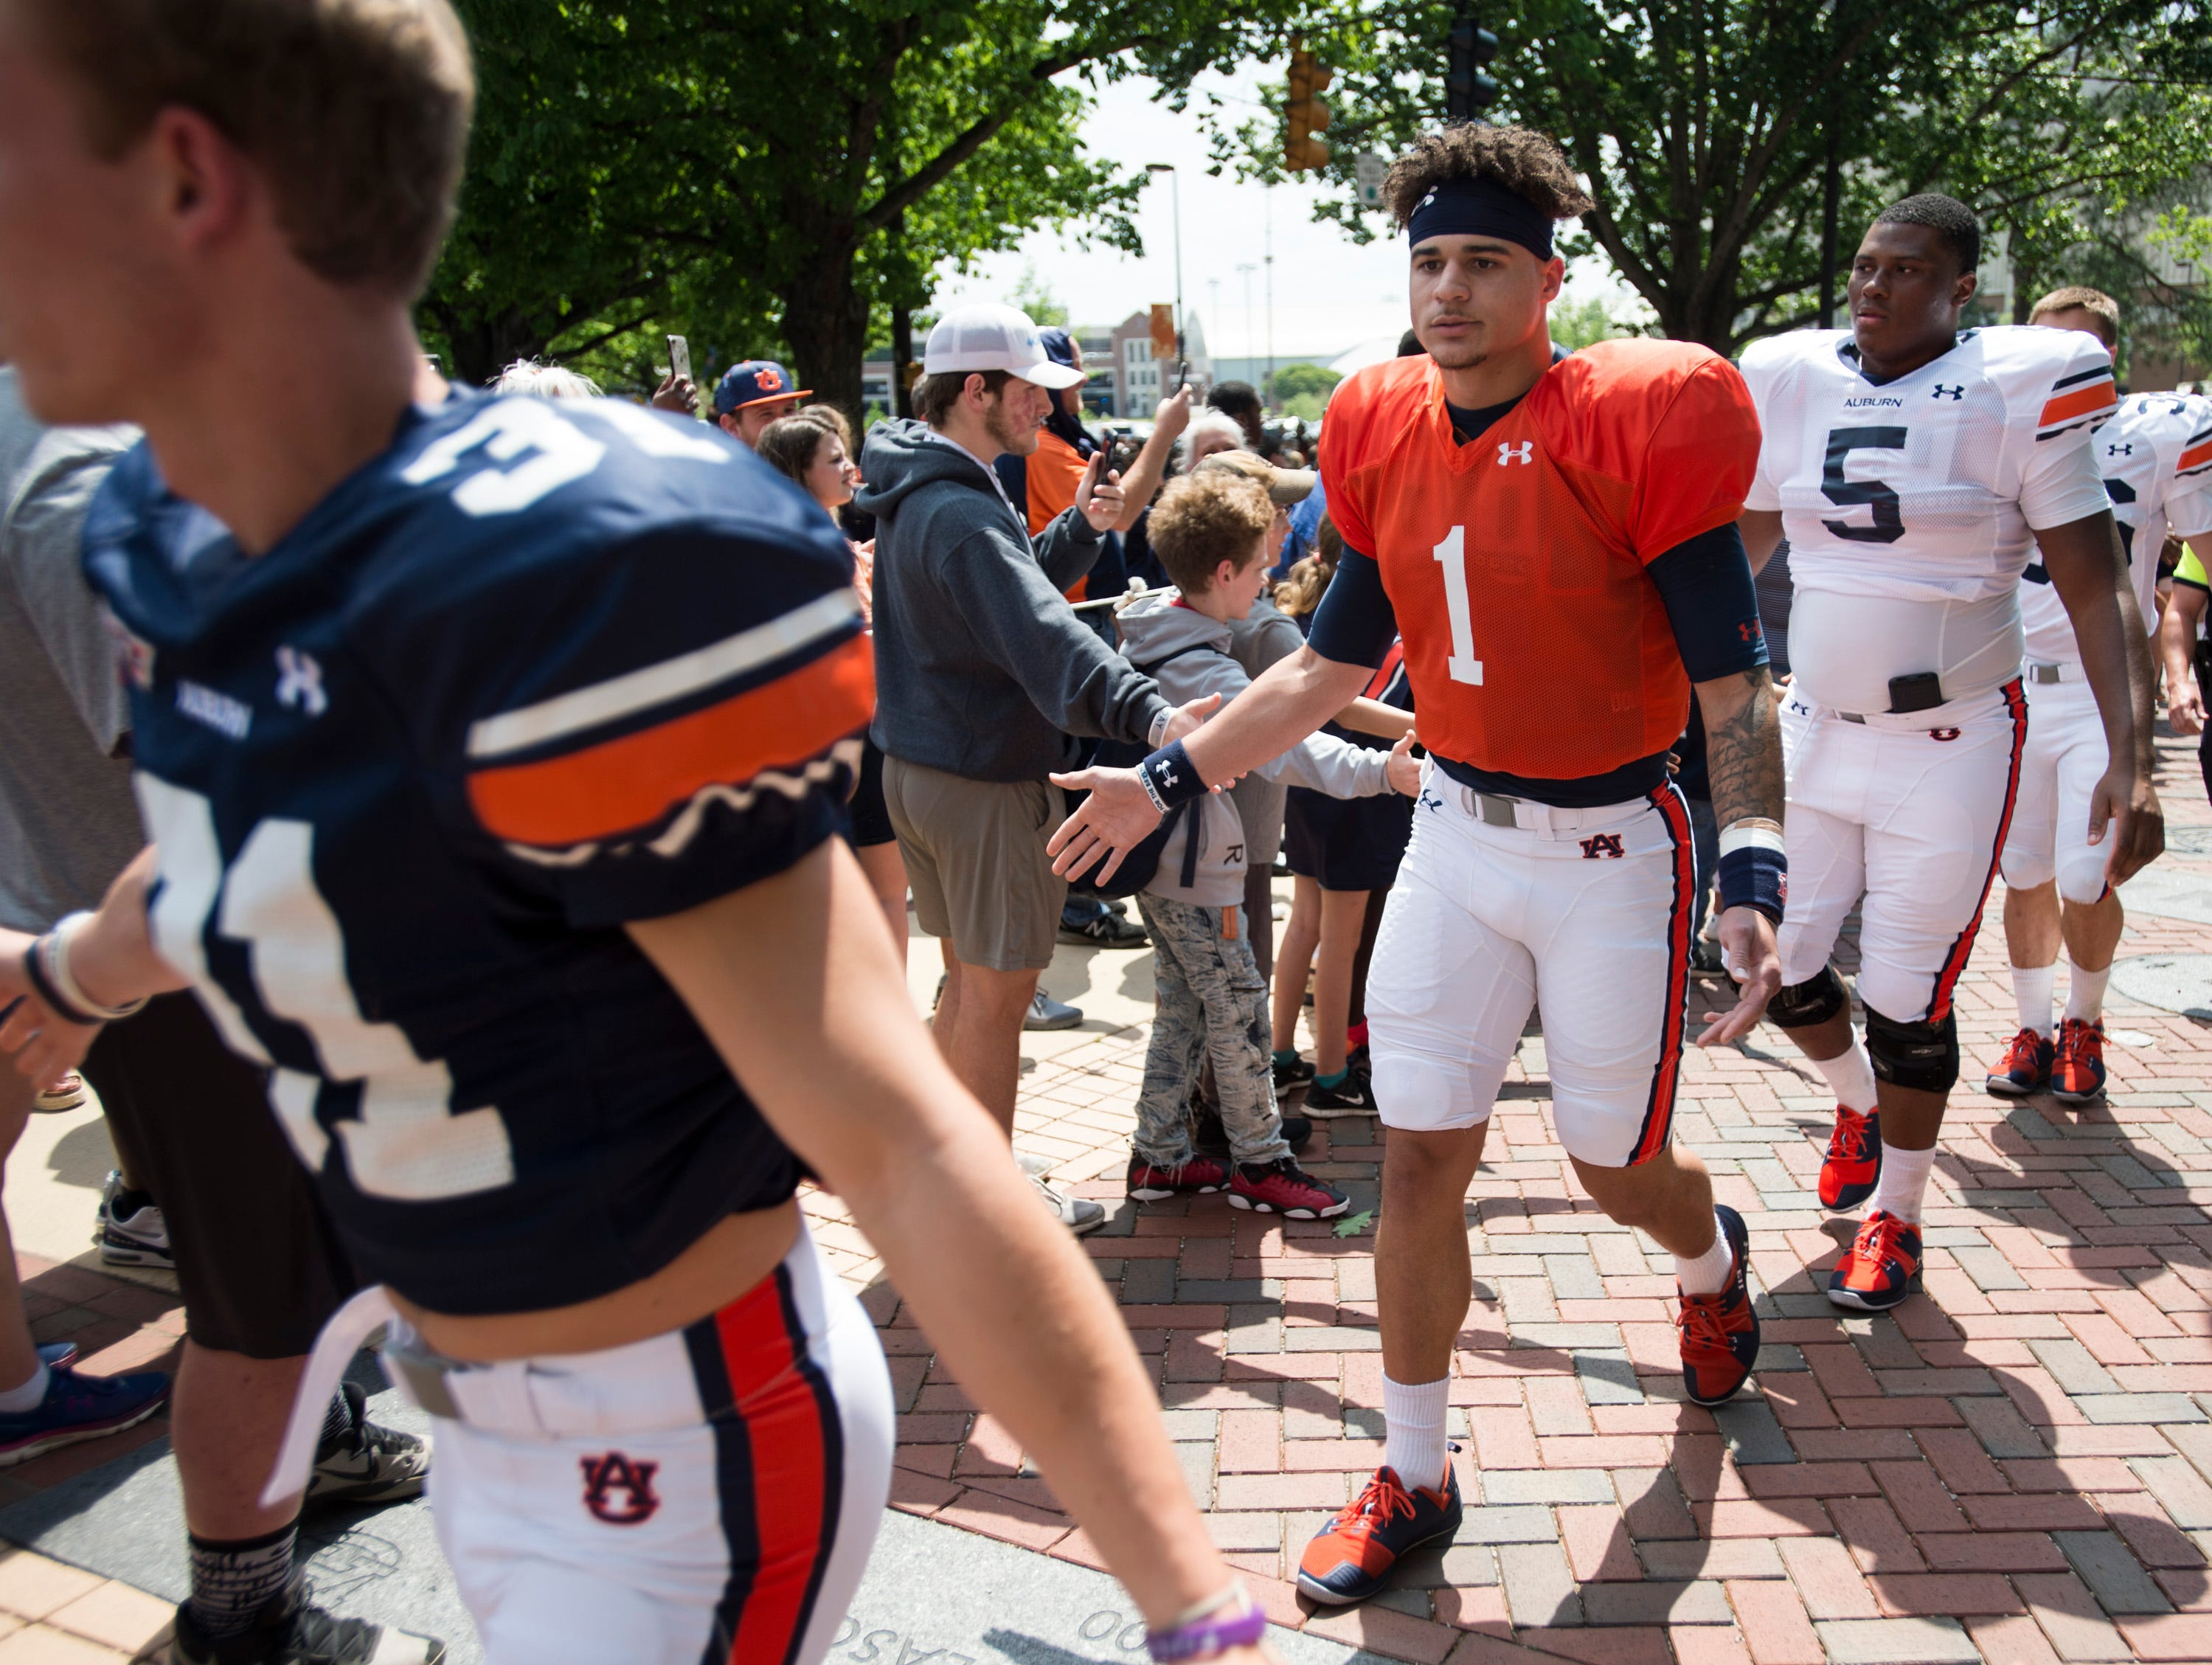 Auburn quarterback Joey Gatewood (1) greets fans during the Tiger Walk during the A-Day spring practice gameat Jordan-Hare Stadium in Auburn, Ala., on Saturday, April 13, 2019.